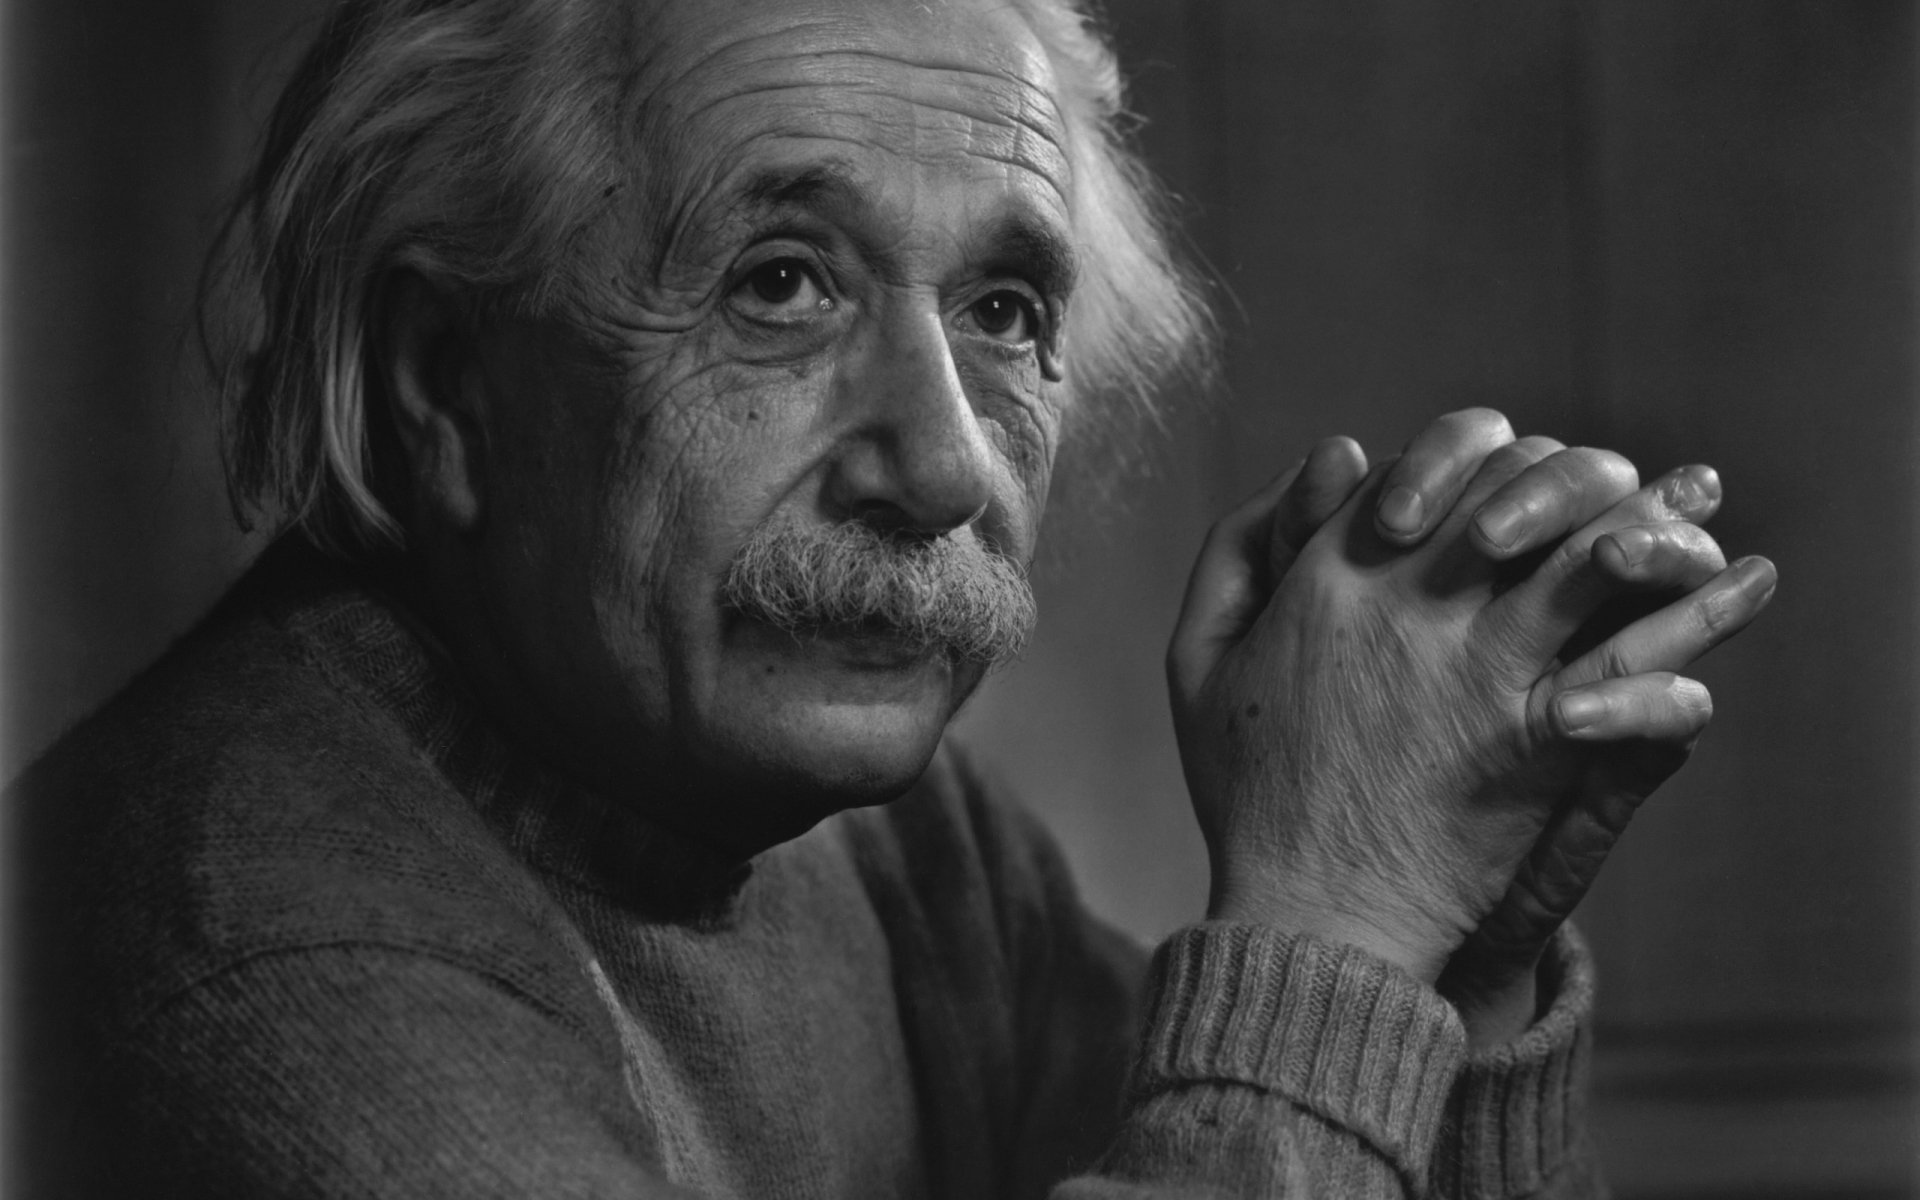 albert einstein great scientist curious man